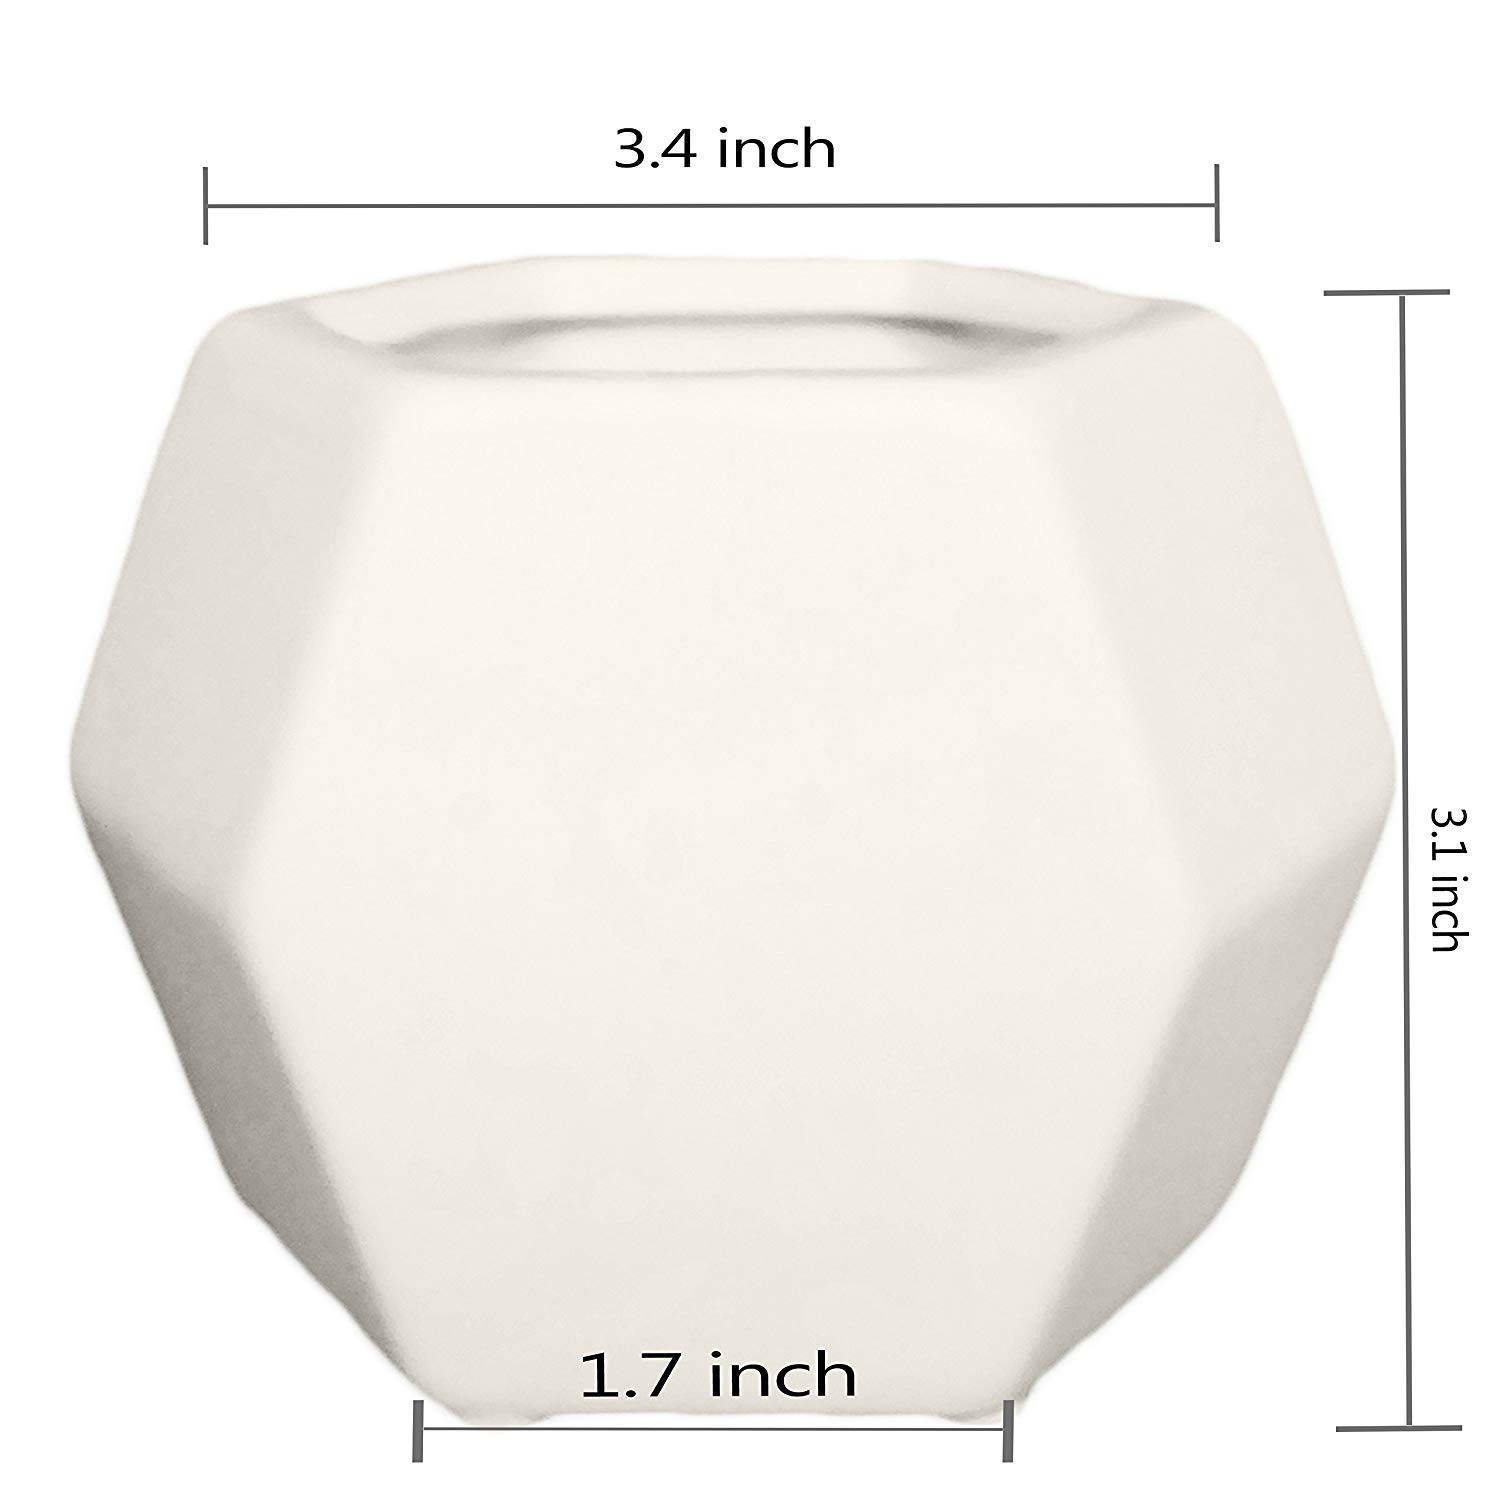 white ceramic geometric vase of amazon com ceramic small collection geometric planter 3 pack with amazon com ceramic small collection geometric planter 3 pack white hexagon succulent plant pot planter container garden outdoor